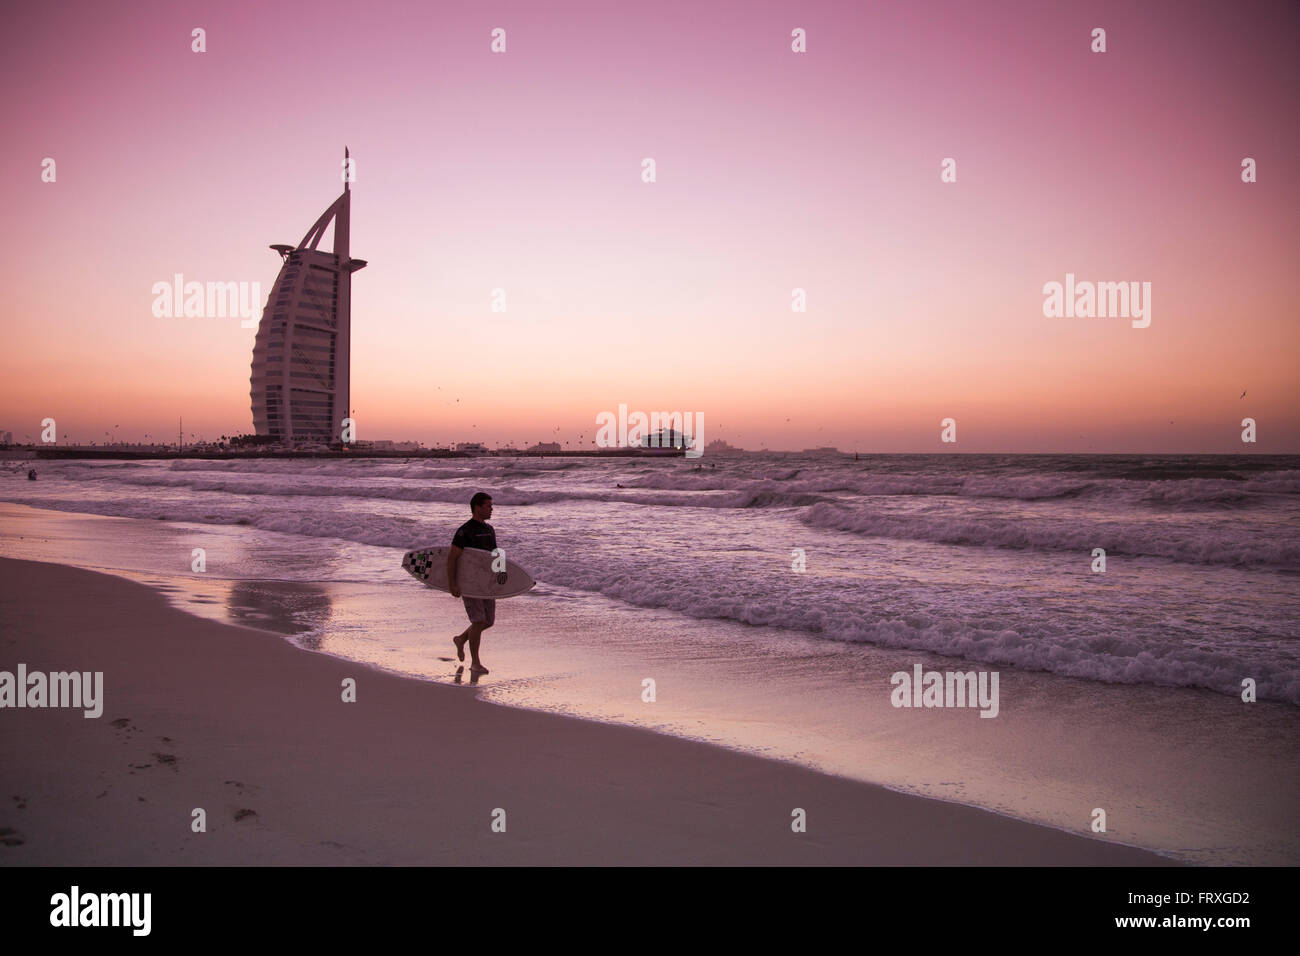 Surfer walking along the beach near Burj al Arab hotel at sunset, Dubai, United Arab Emirates - Stock Image